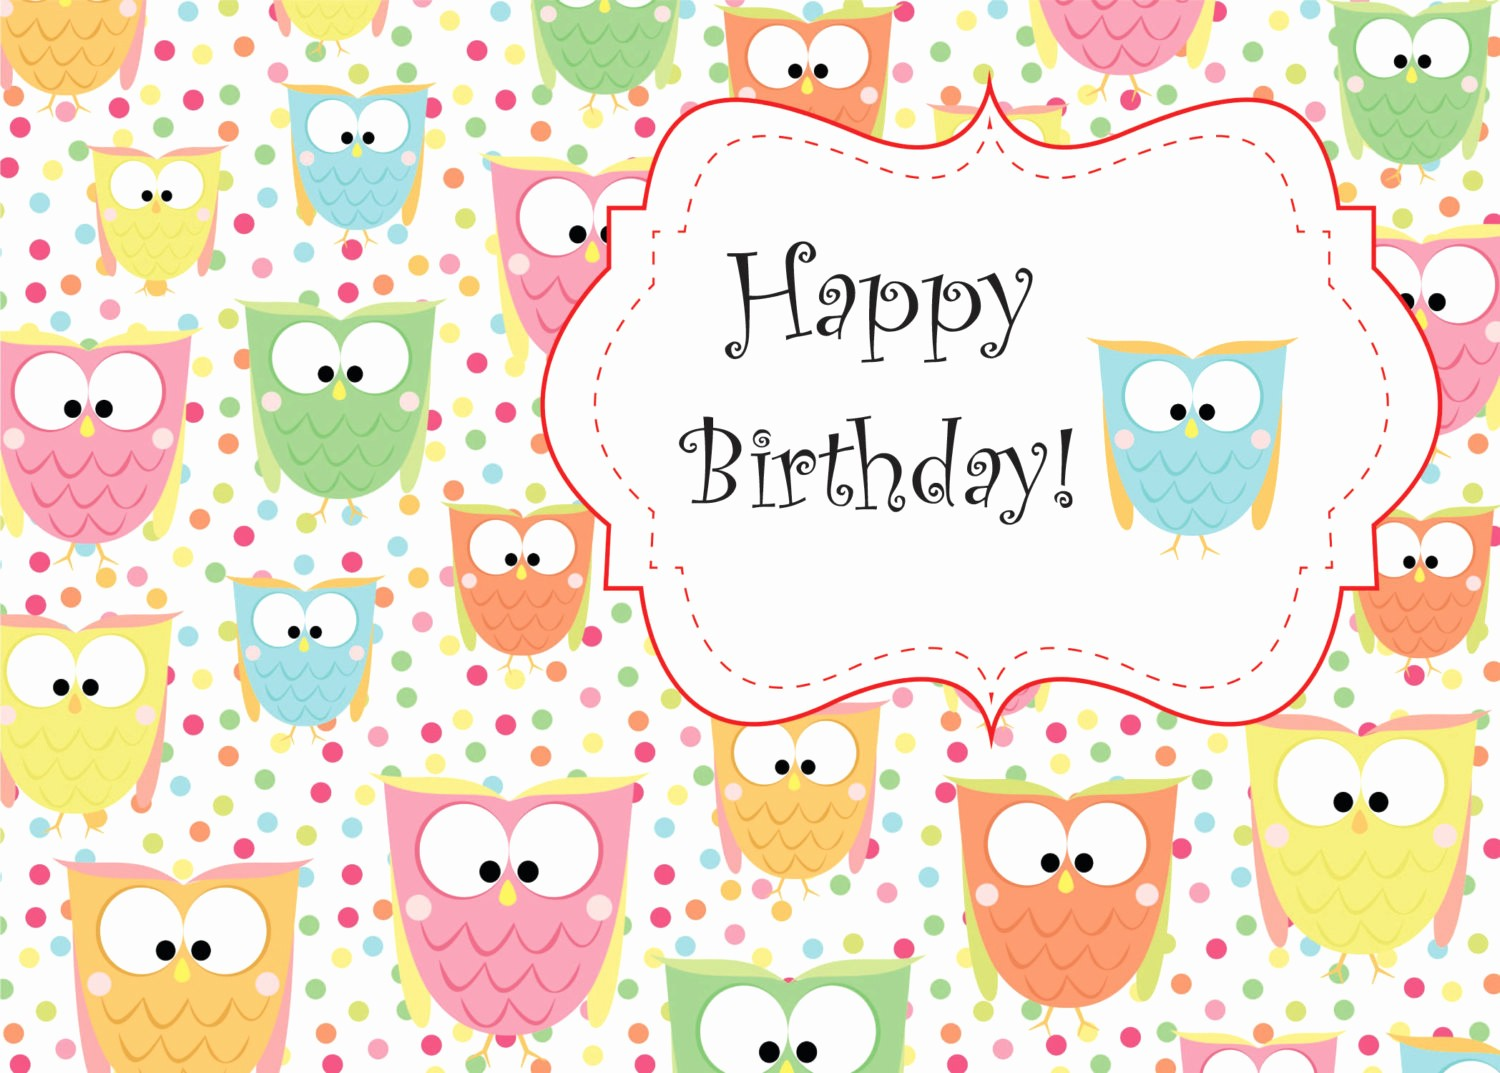 Happy Birthday Certificate Free Printable Lovely Amazing Birthday Wishes that Can Make Your Dear Friend